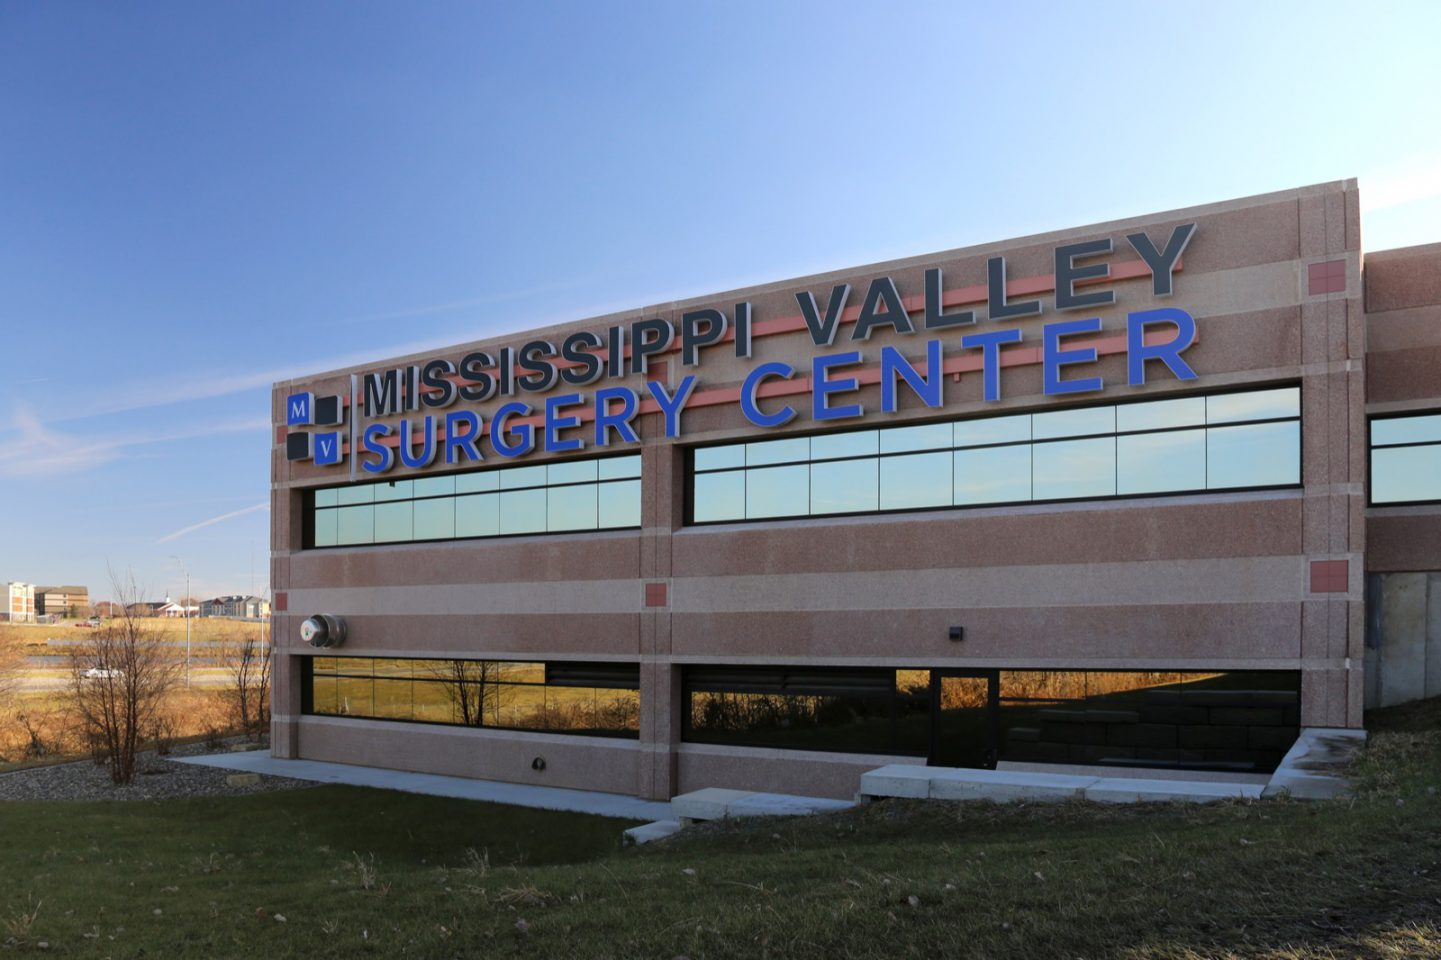 Mississippi Valley Surger Center exterior building with logo